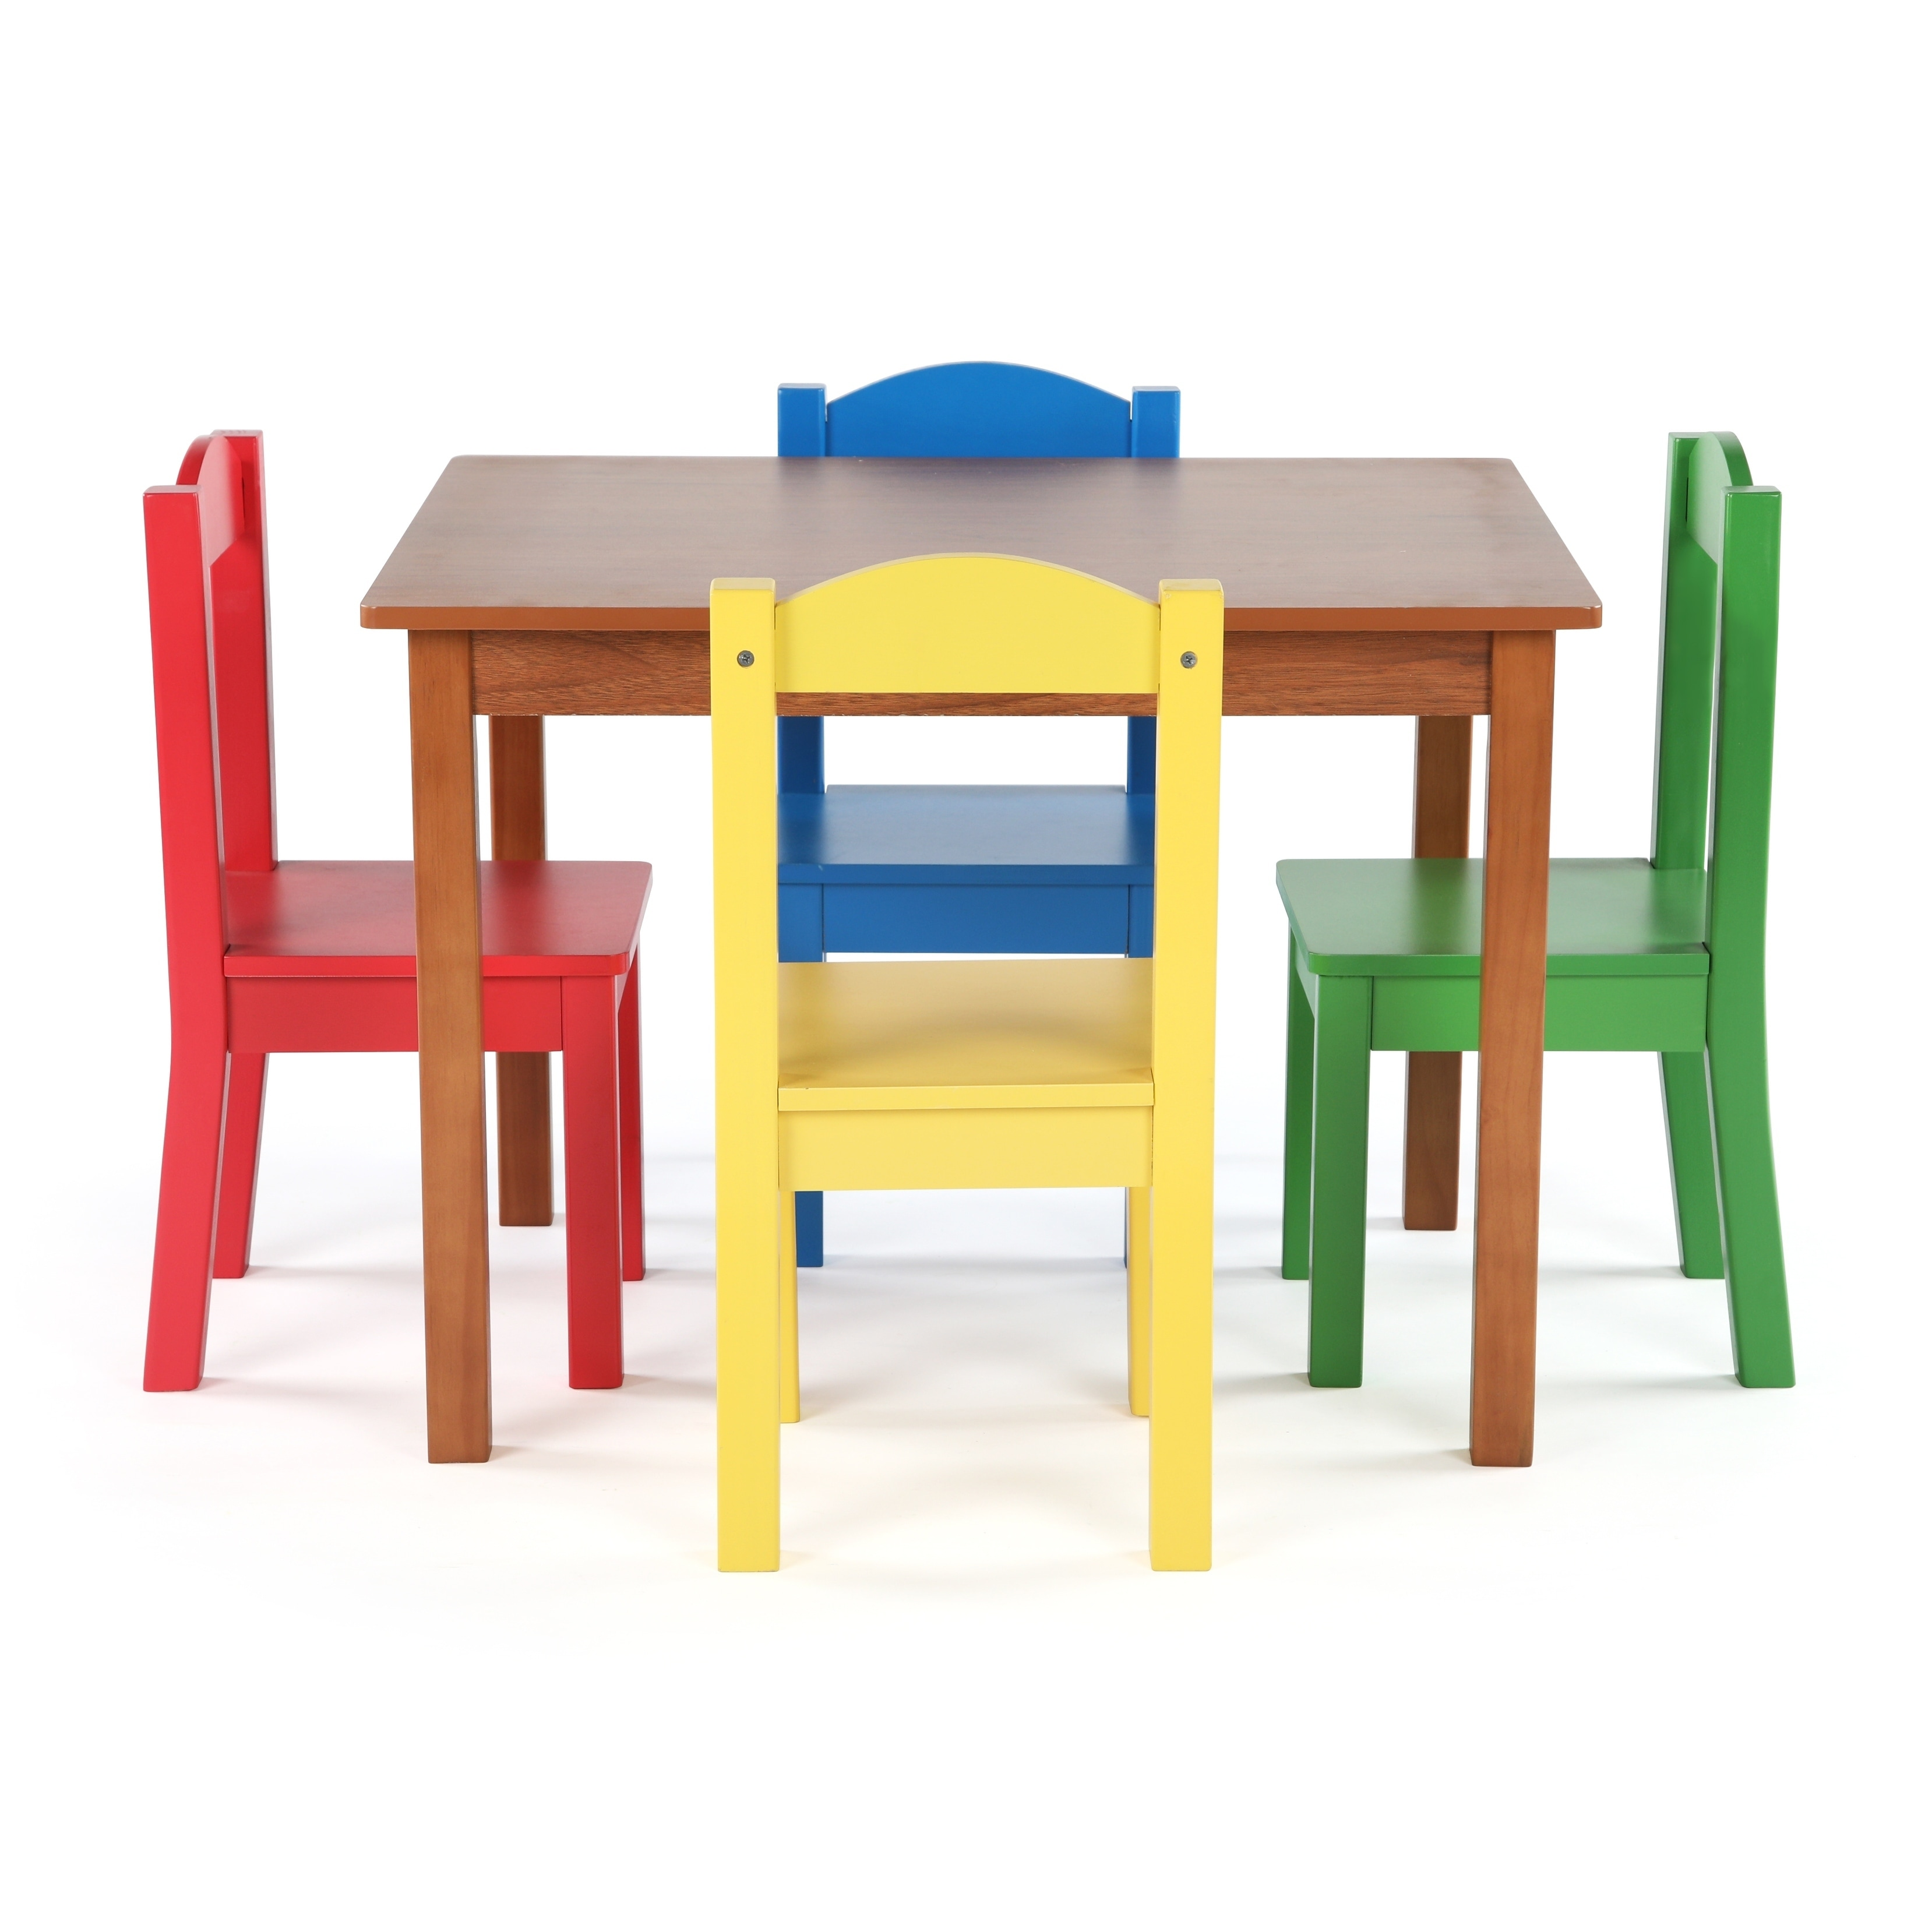 d525b60c04c85 Shop Highlight Collection Kids Wood Table   4 Chairs Set